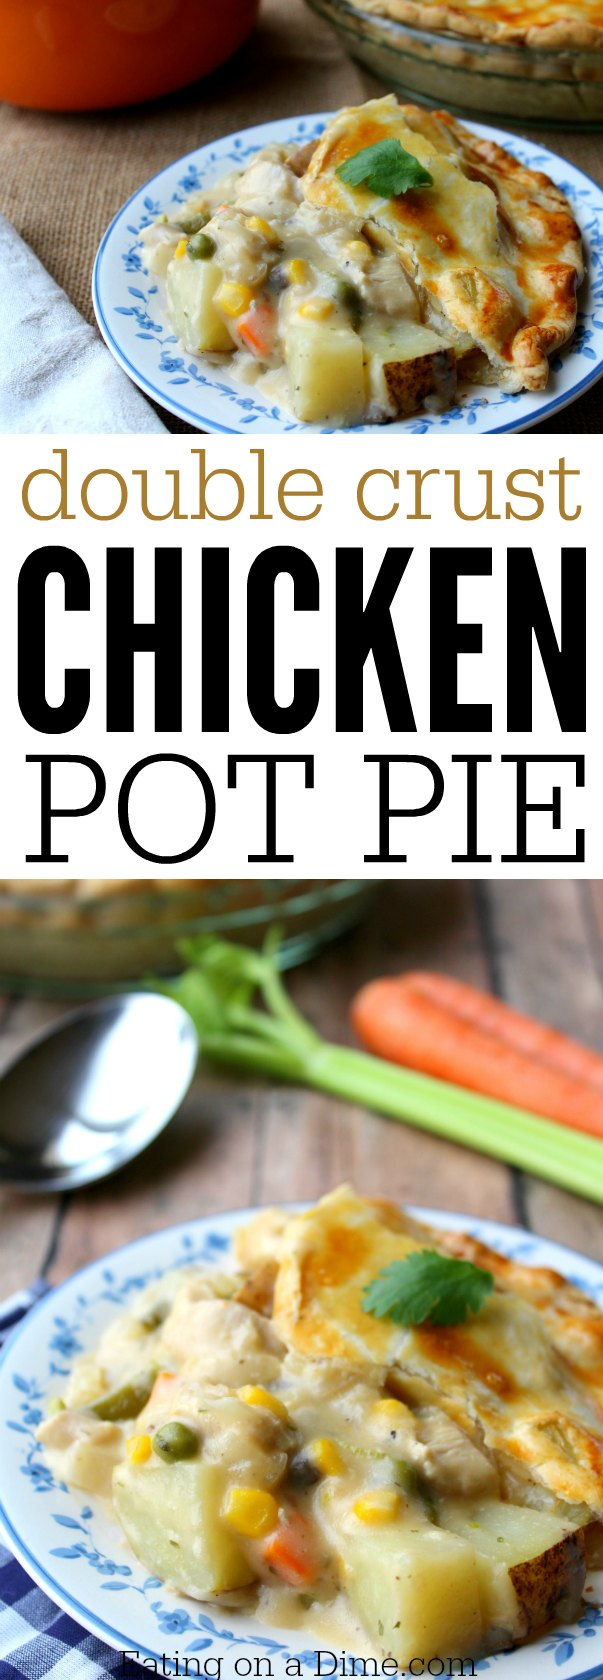 double crust chicken pot pie - easy to make and delicious